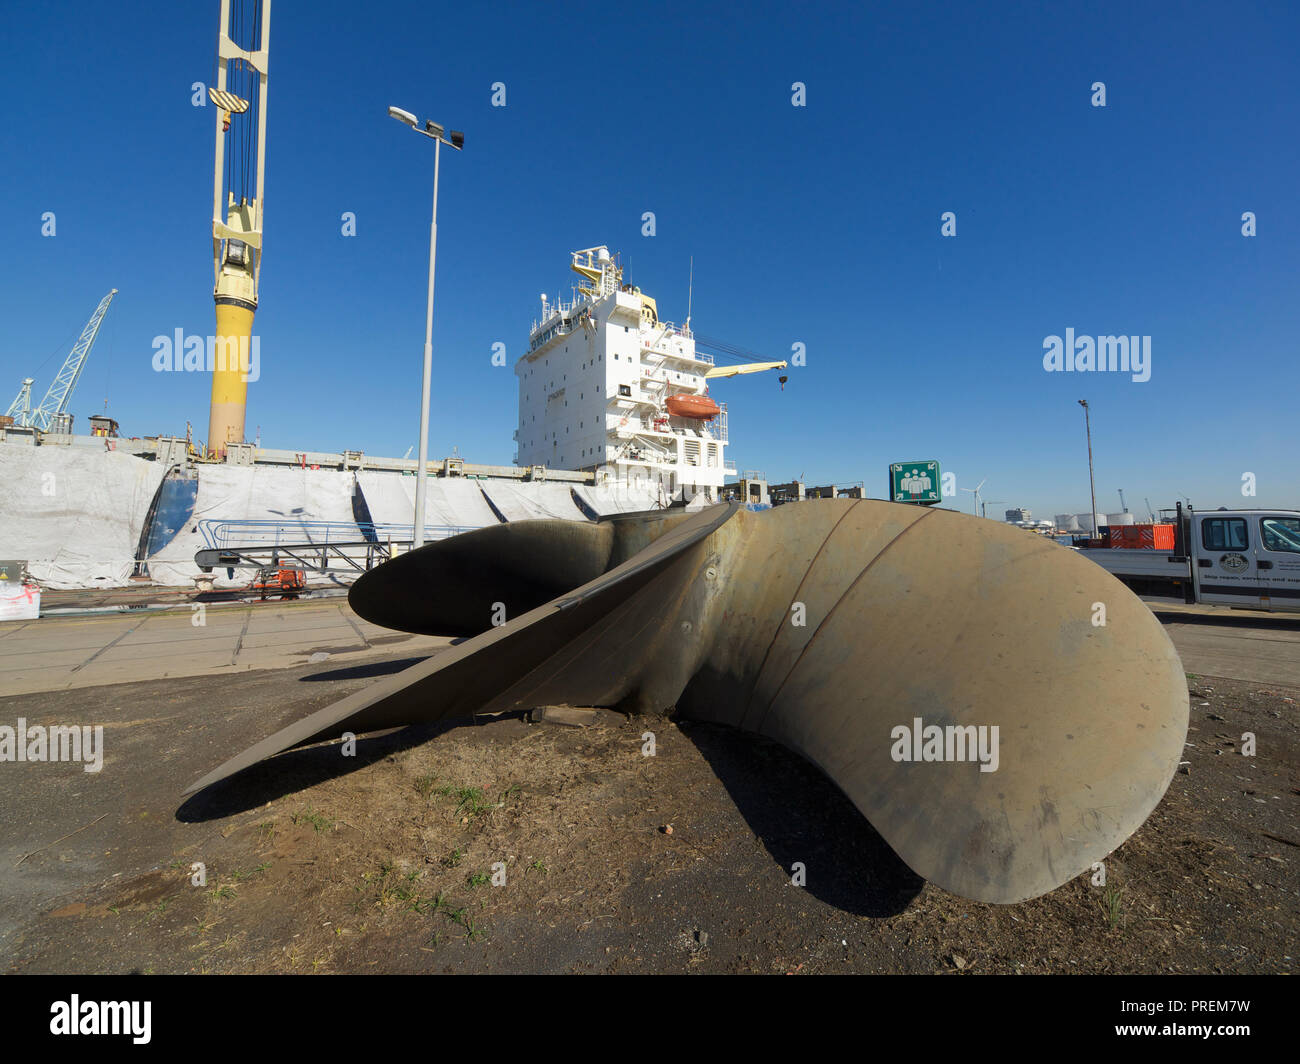 Cargo ship in dry dock for maintenance with large propeller in the foreground, port of Antwerp, Belgium - Stock Image